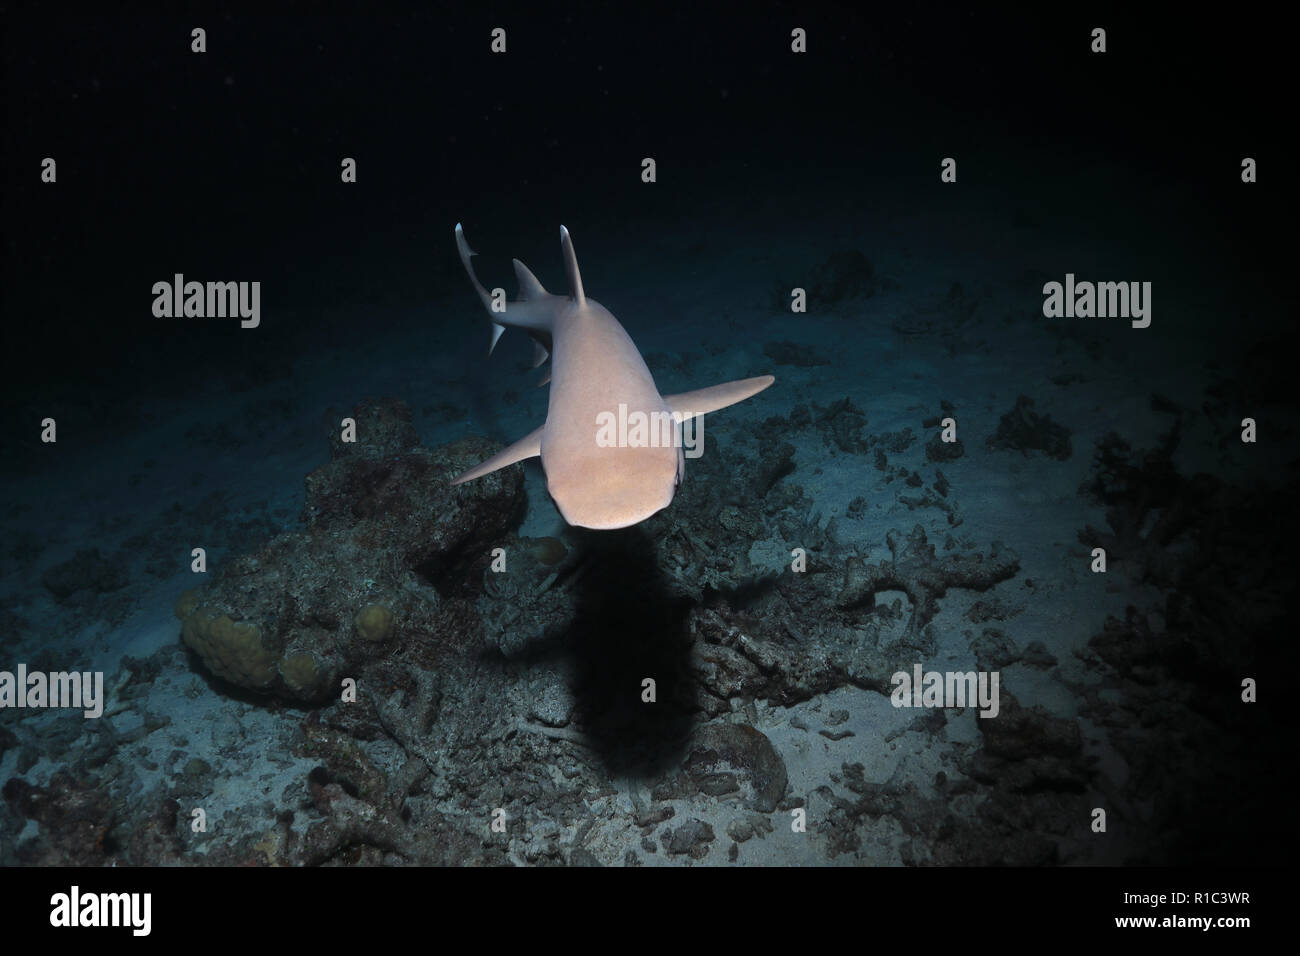 Whitetip reef shark (Triaenodon obesus) hunting in the night underwater in the Great Barrier Reef of Australia - Stock Image